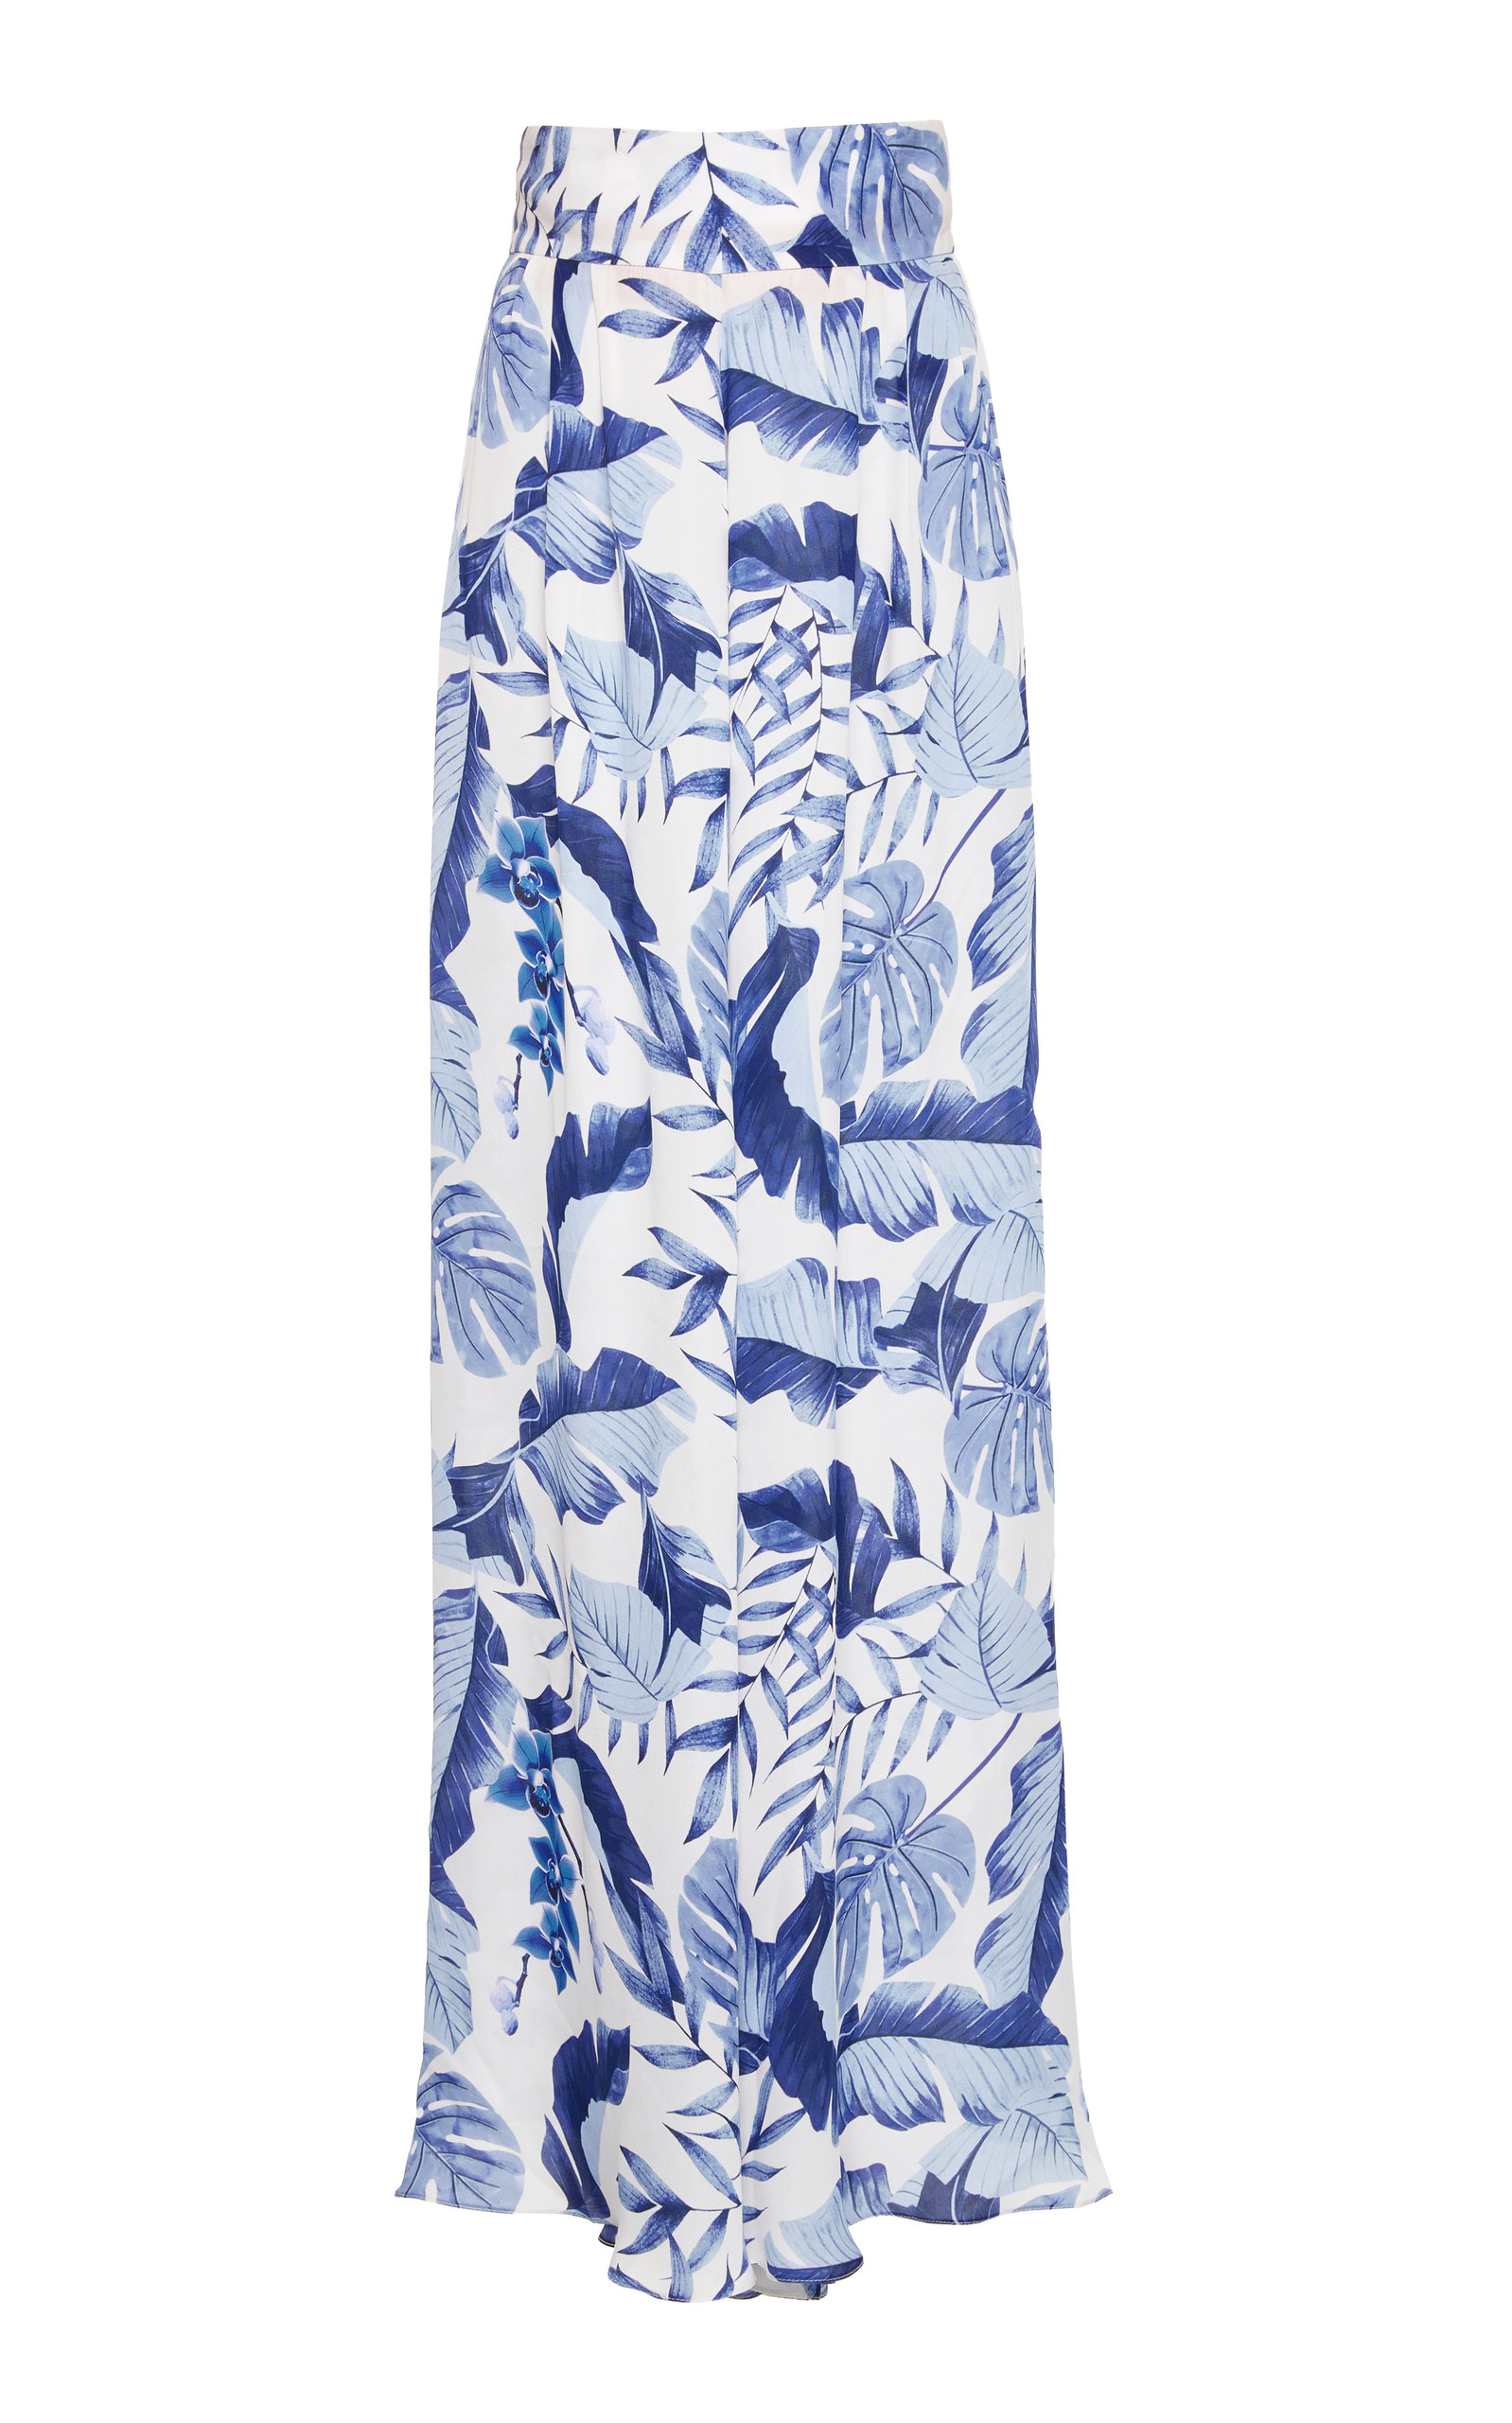 MO Exclusive Lord Derby Georgette Pants Johanna Ortiz Free Shipping Order Cheap Very Cheap sh1cKOI